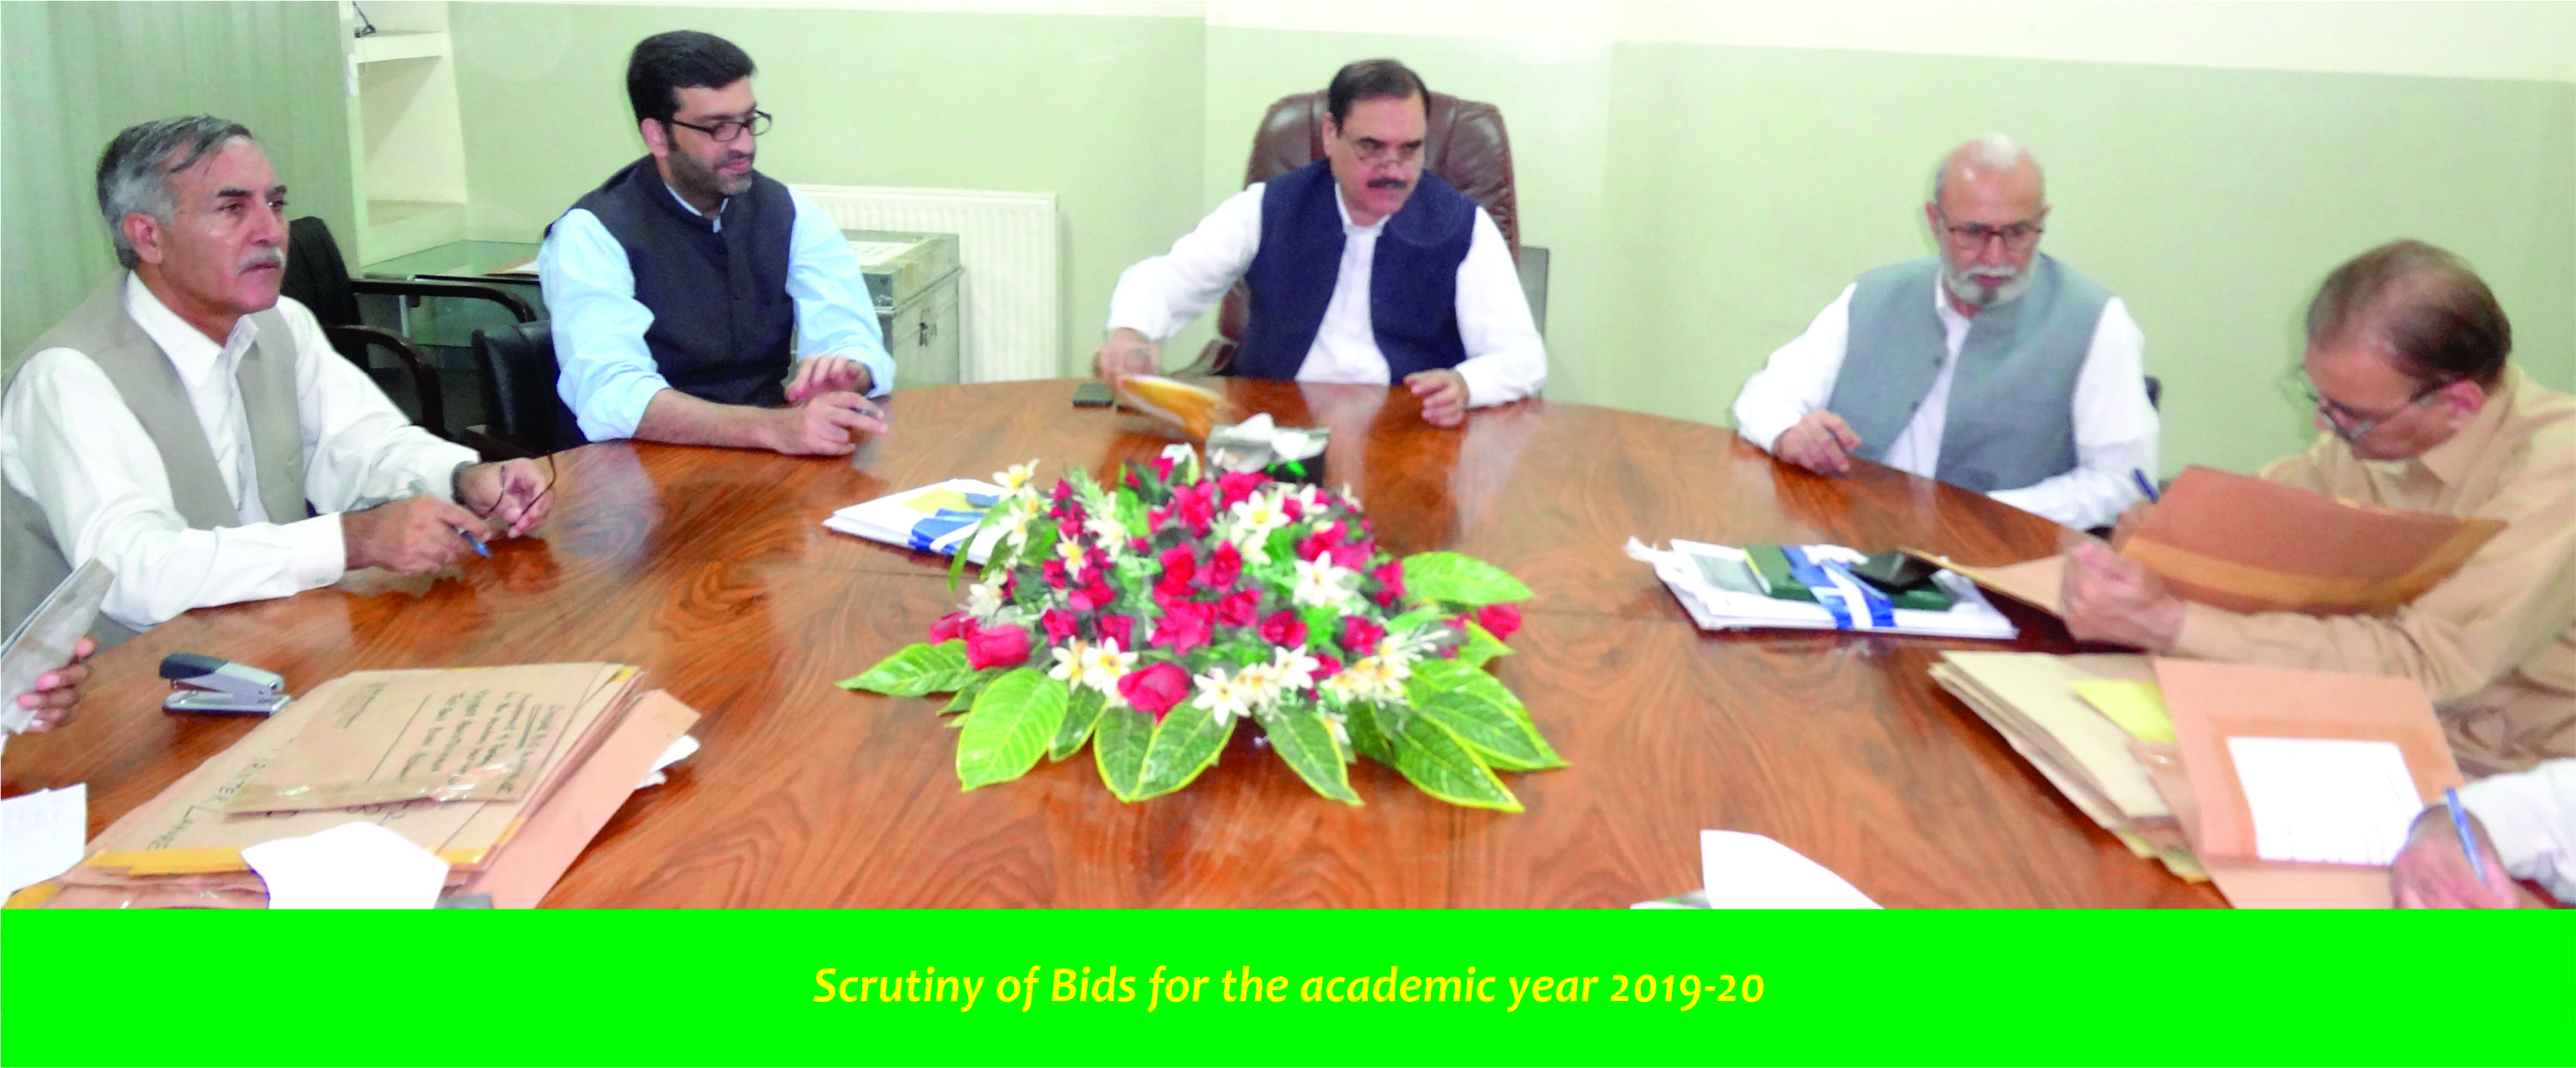 Scrutiny_of_bids